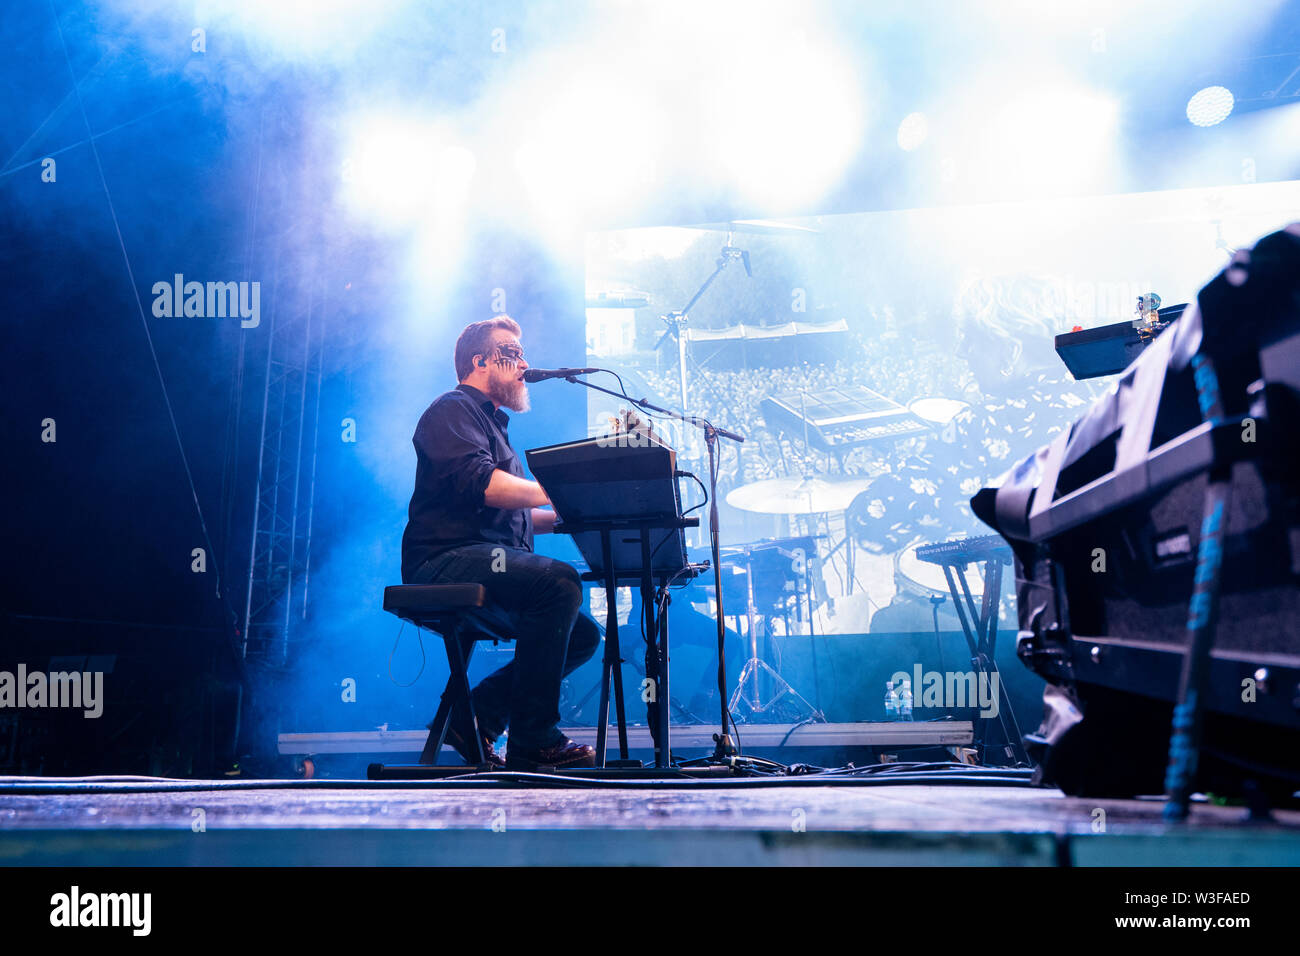 Bergen, Norway - June 15th, 2019. The American singer, musician and songwriter John Grant performs a live concert during the Norwegian music festival Bergenfest 2019 in Bergen. (Photo credit: Gonzales Photo - Jarle H. Moe). - Stock Image